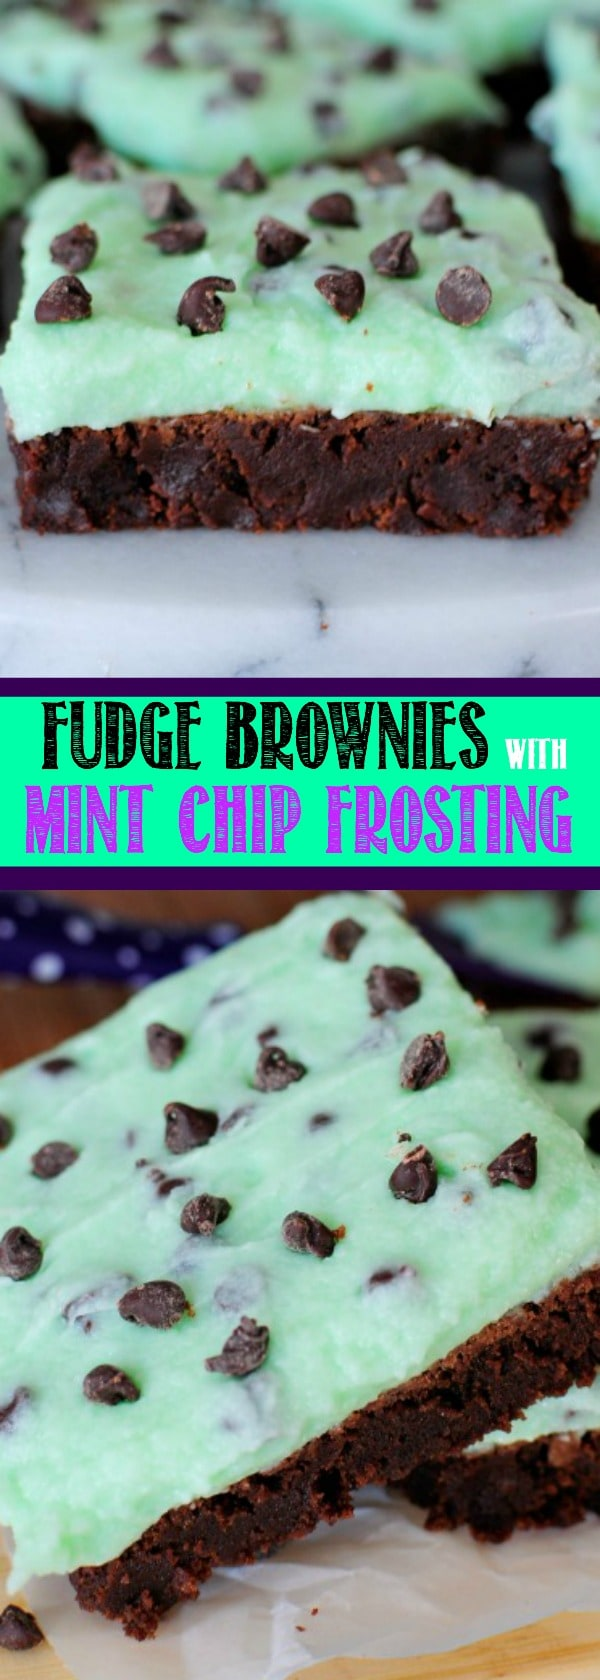 These Fudge Brownies with Mint Chocolate Chip Frosting are one of the best desserts ever! The cool, creamy, minty frosting perfectly compliments the rich, fudgy brownies.